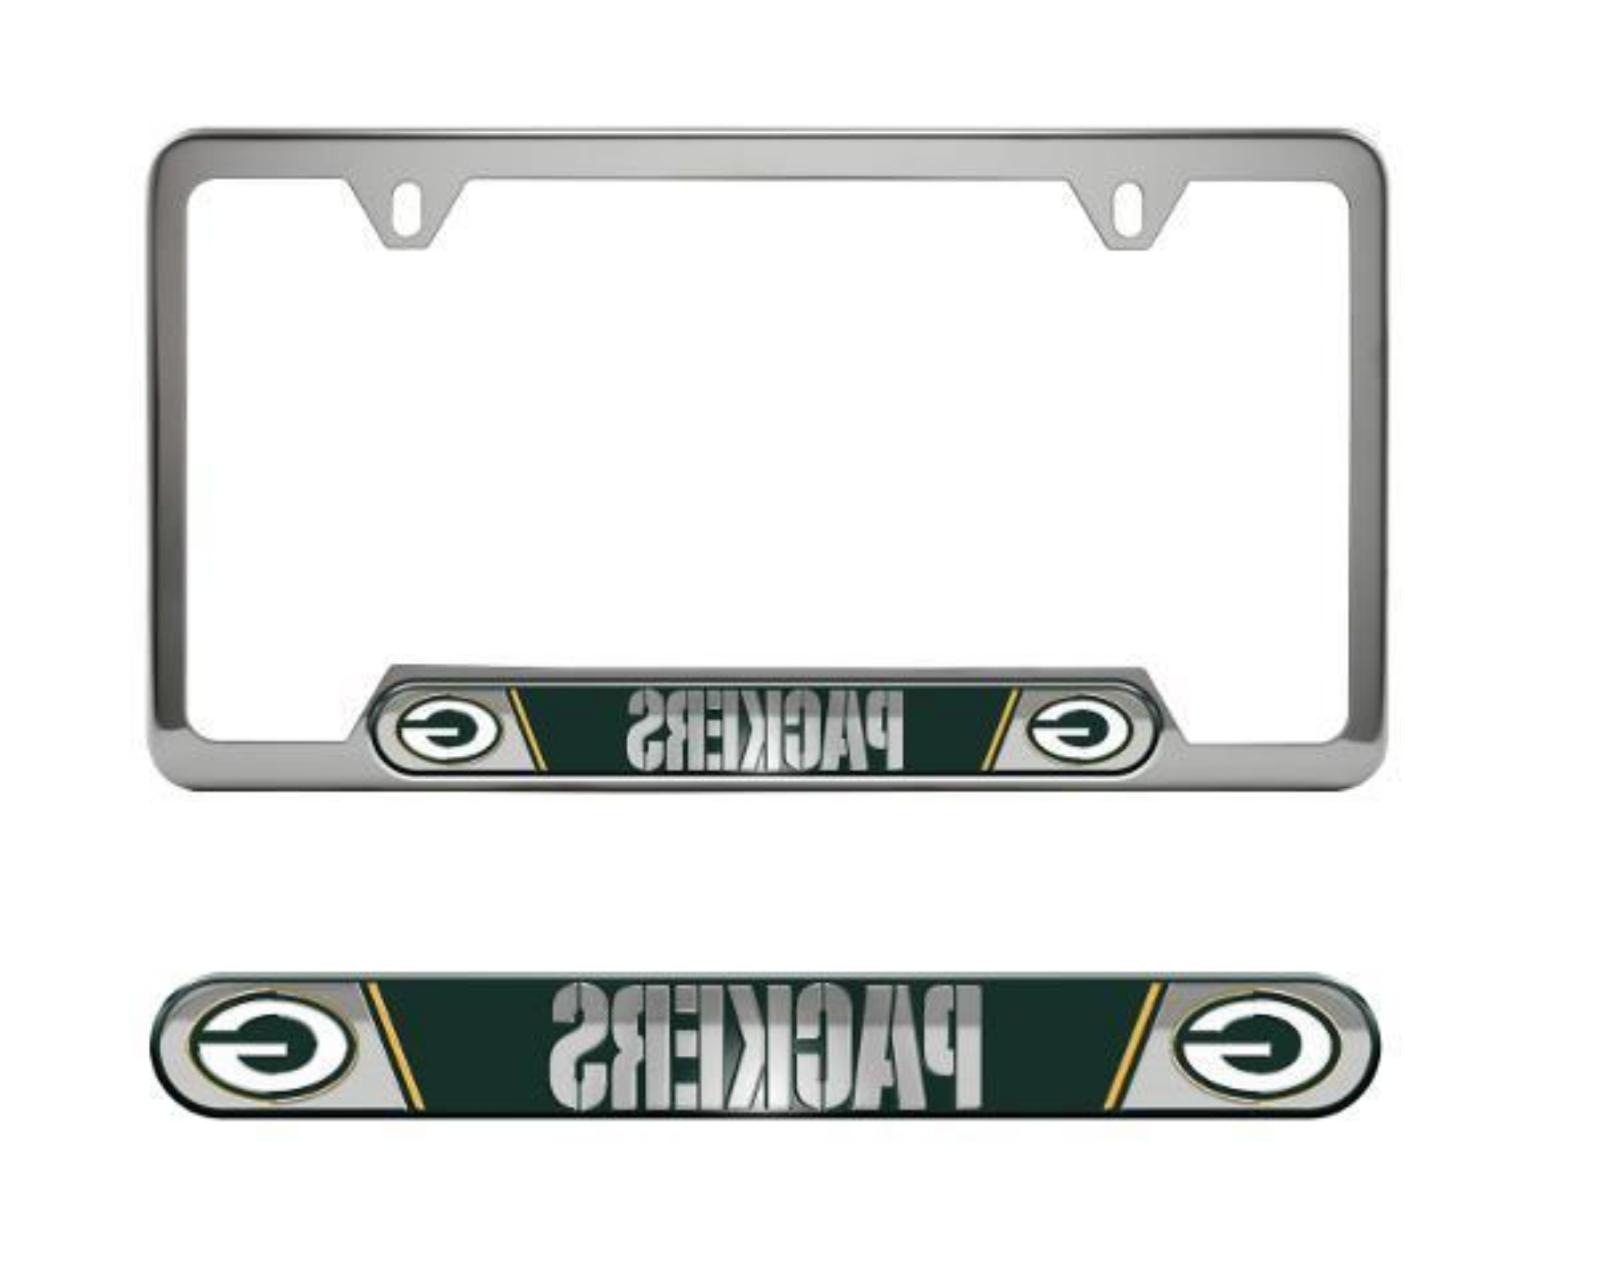 nfl green bay packers license plate frame